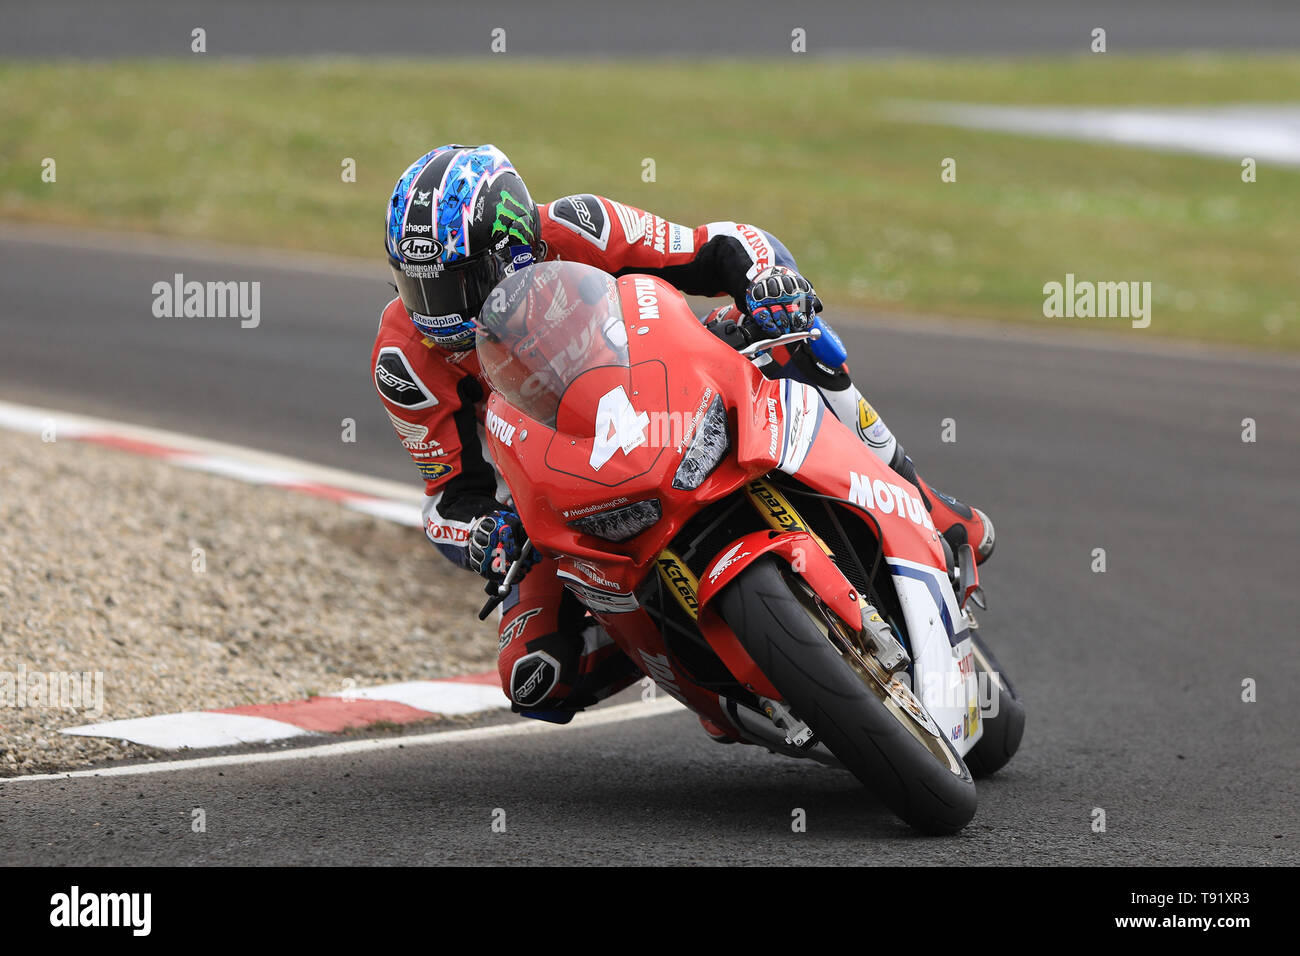 Portrush, Northern Ireland. 16th May, 2019. International North West 200 Motorcycle road racing, Thursday practice and evening racing; Ian Hutchinson on the Honda Racing Honda during the SuperStock qualifying session Credit: Action Plus Sports/Alamy Live News - Stock Image